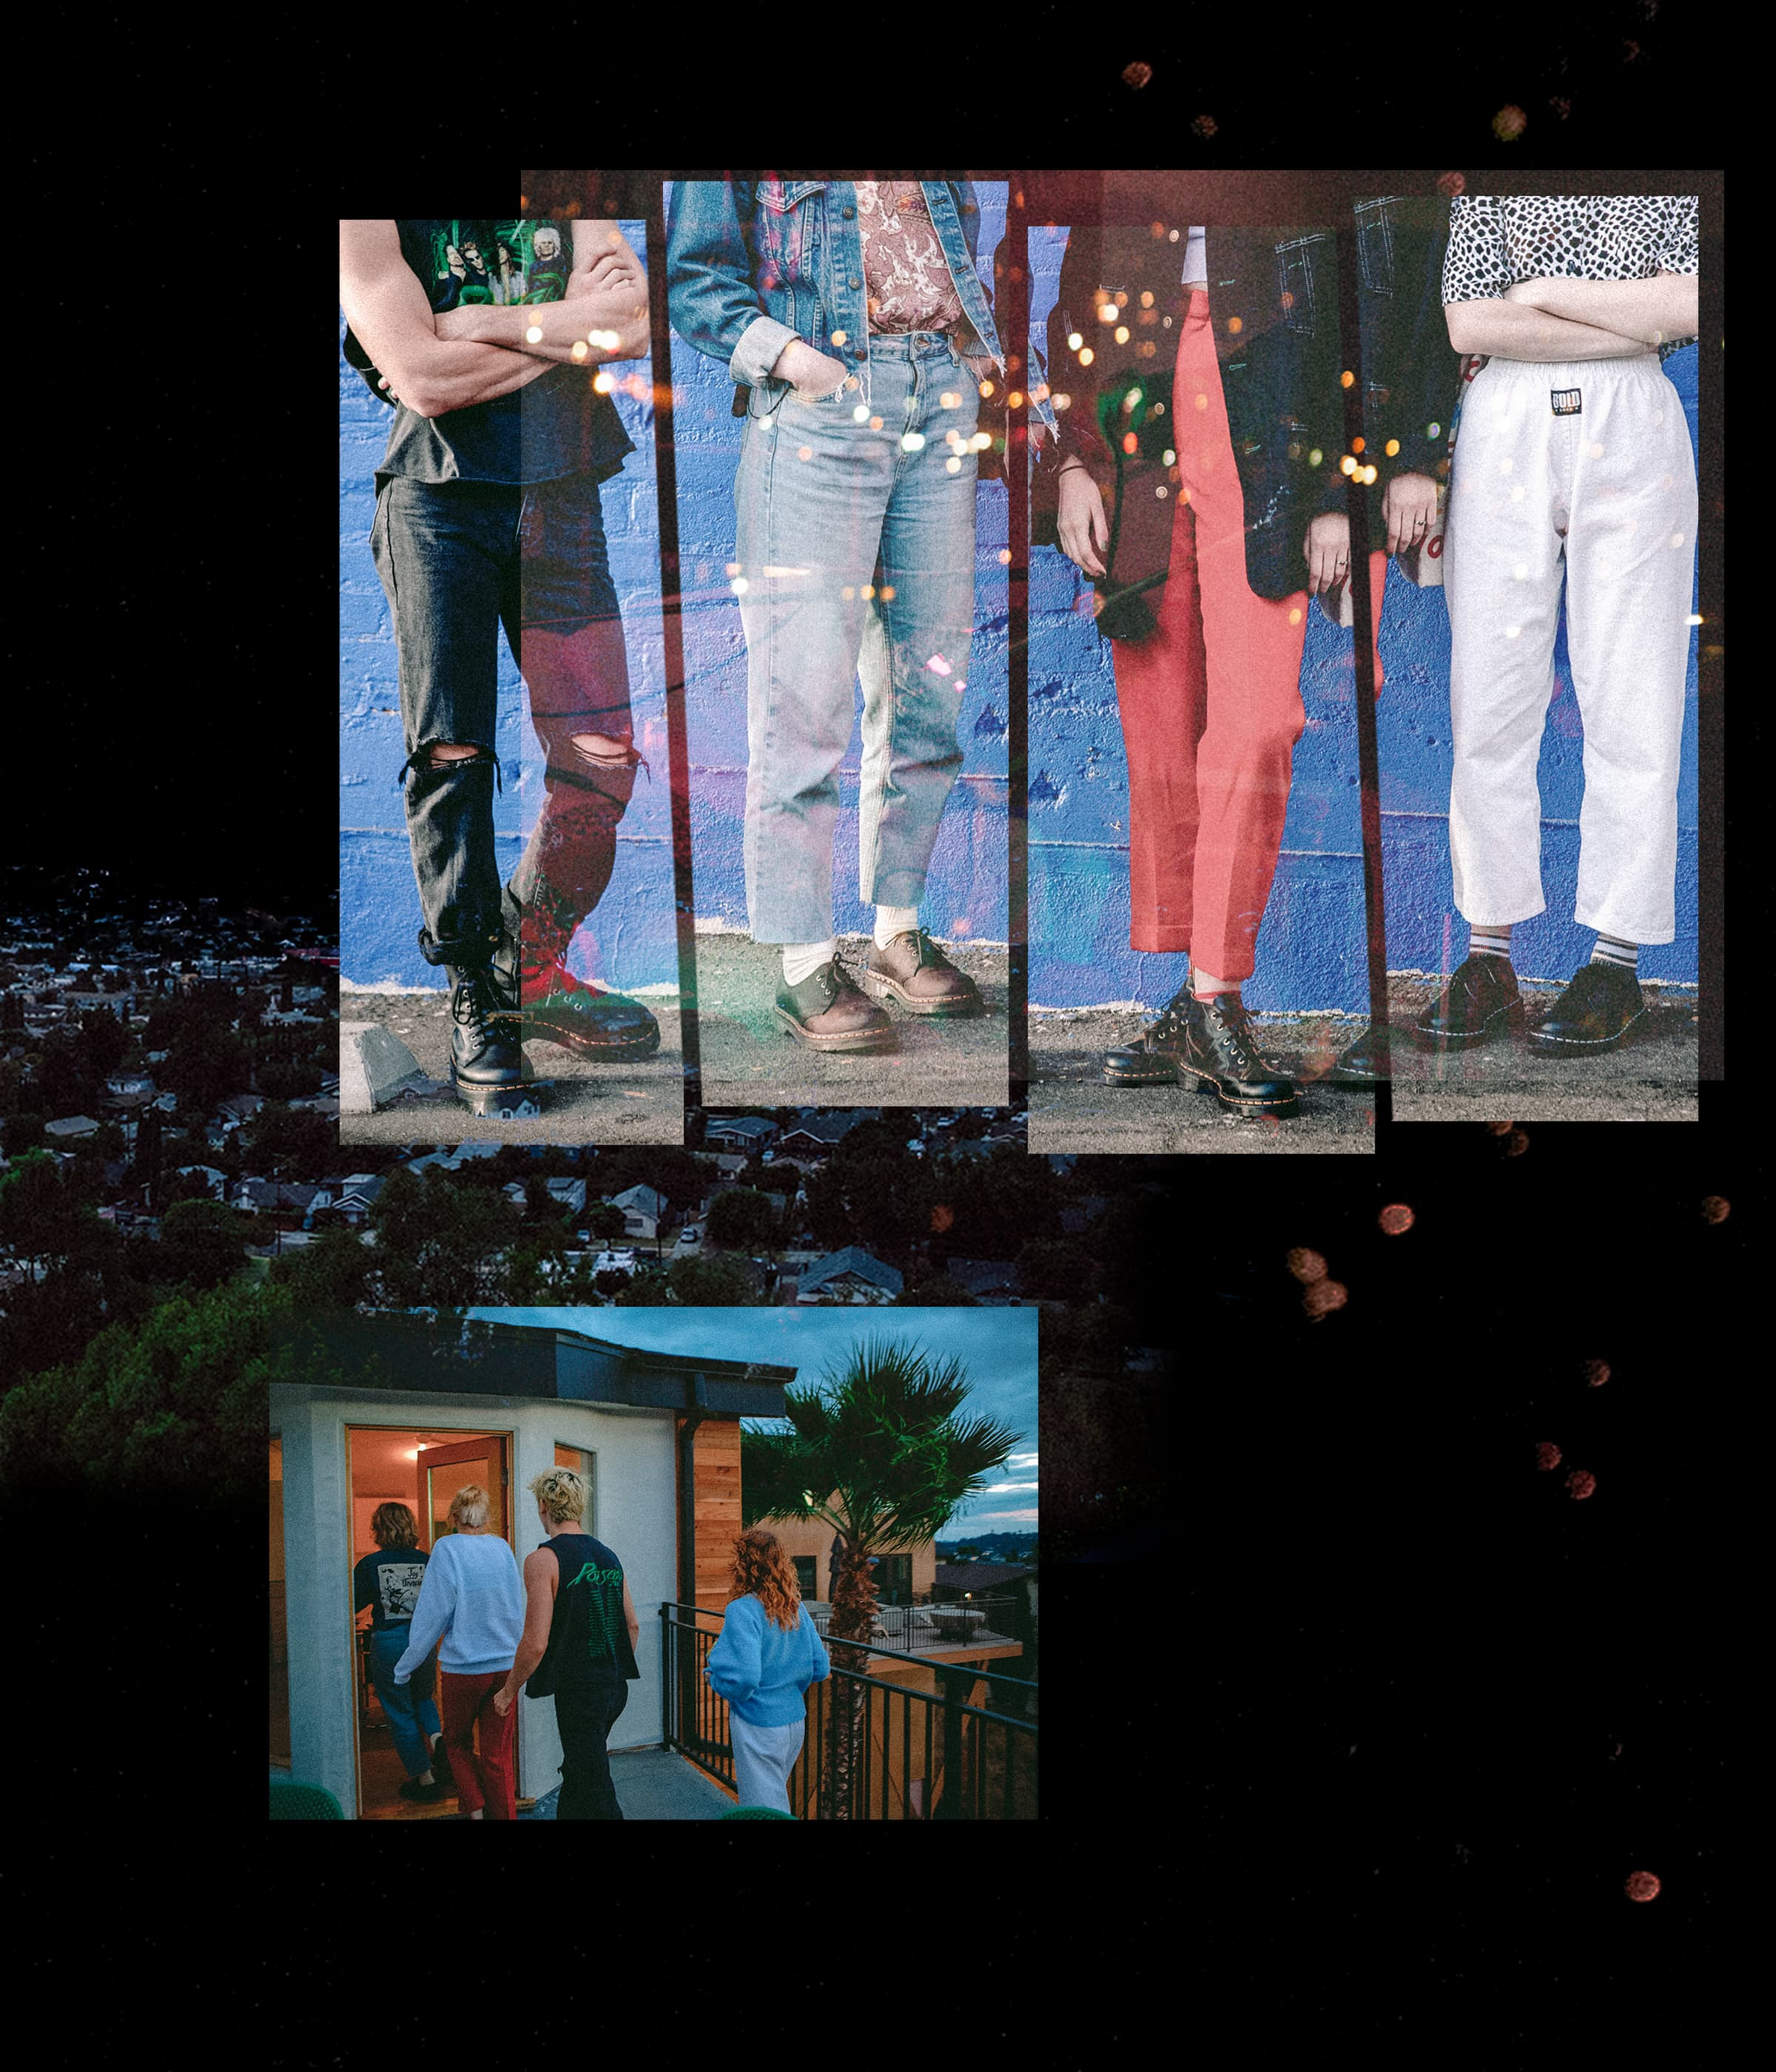 A collage of photos featuring The Regrettes standing side-by-side in front of a wall and also heading inside at dusk.